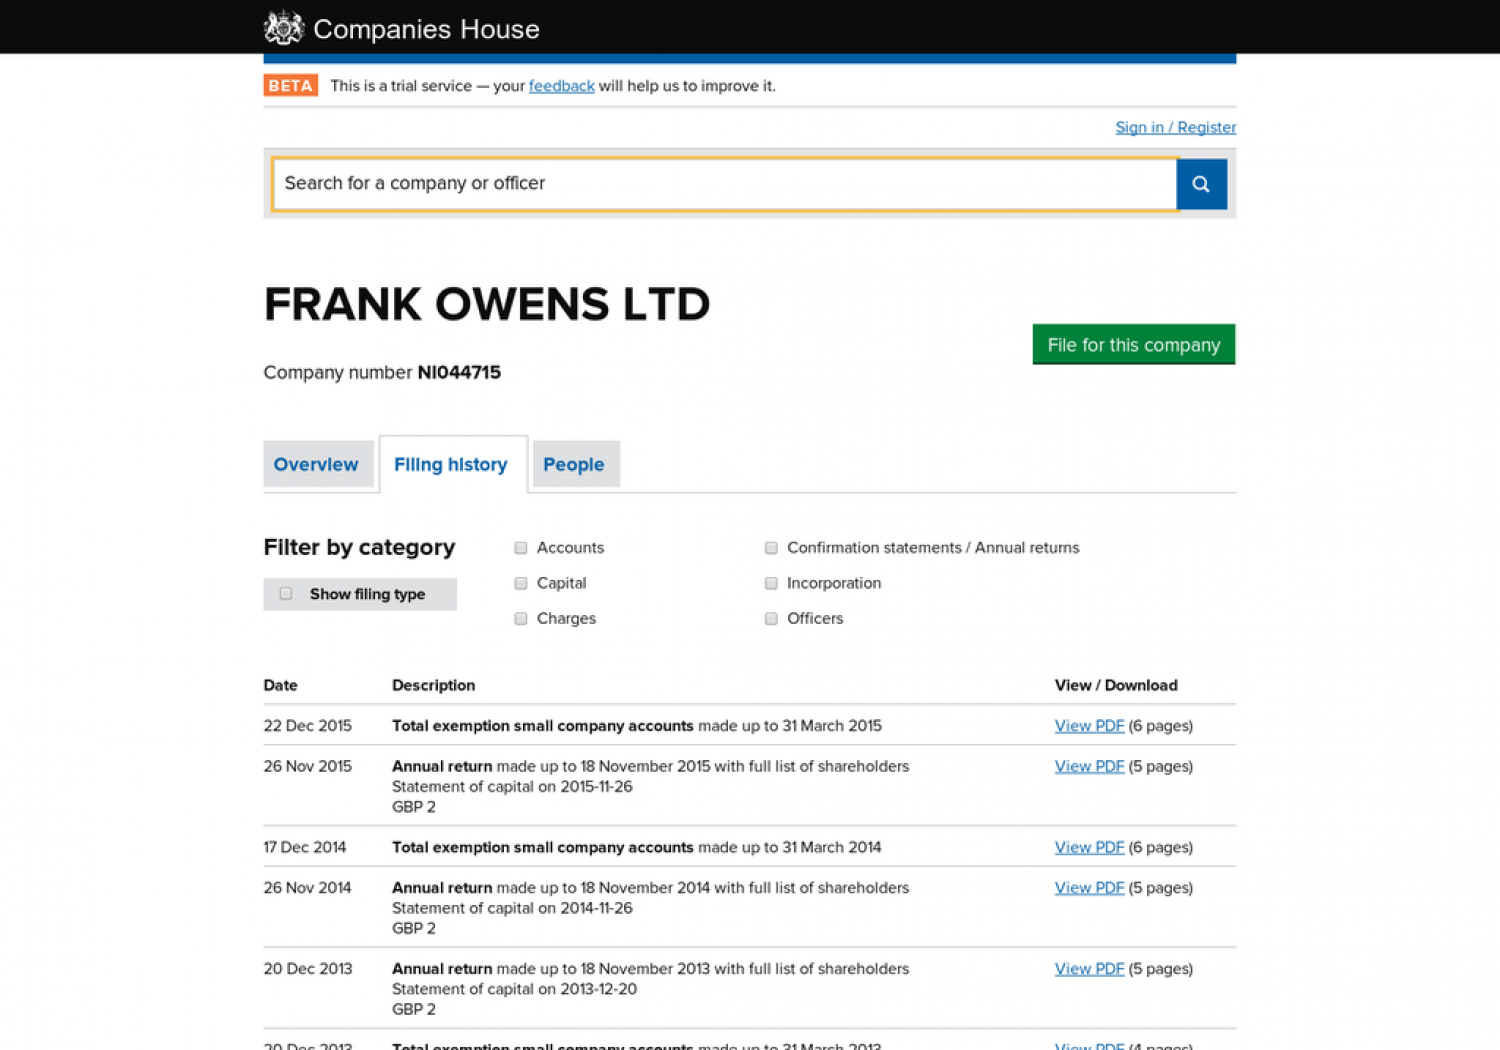 Frank Owens LTD Home Building Industry - Filing History Infographic